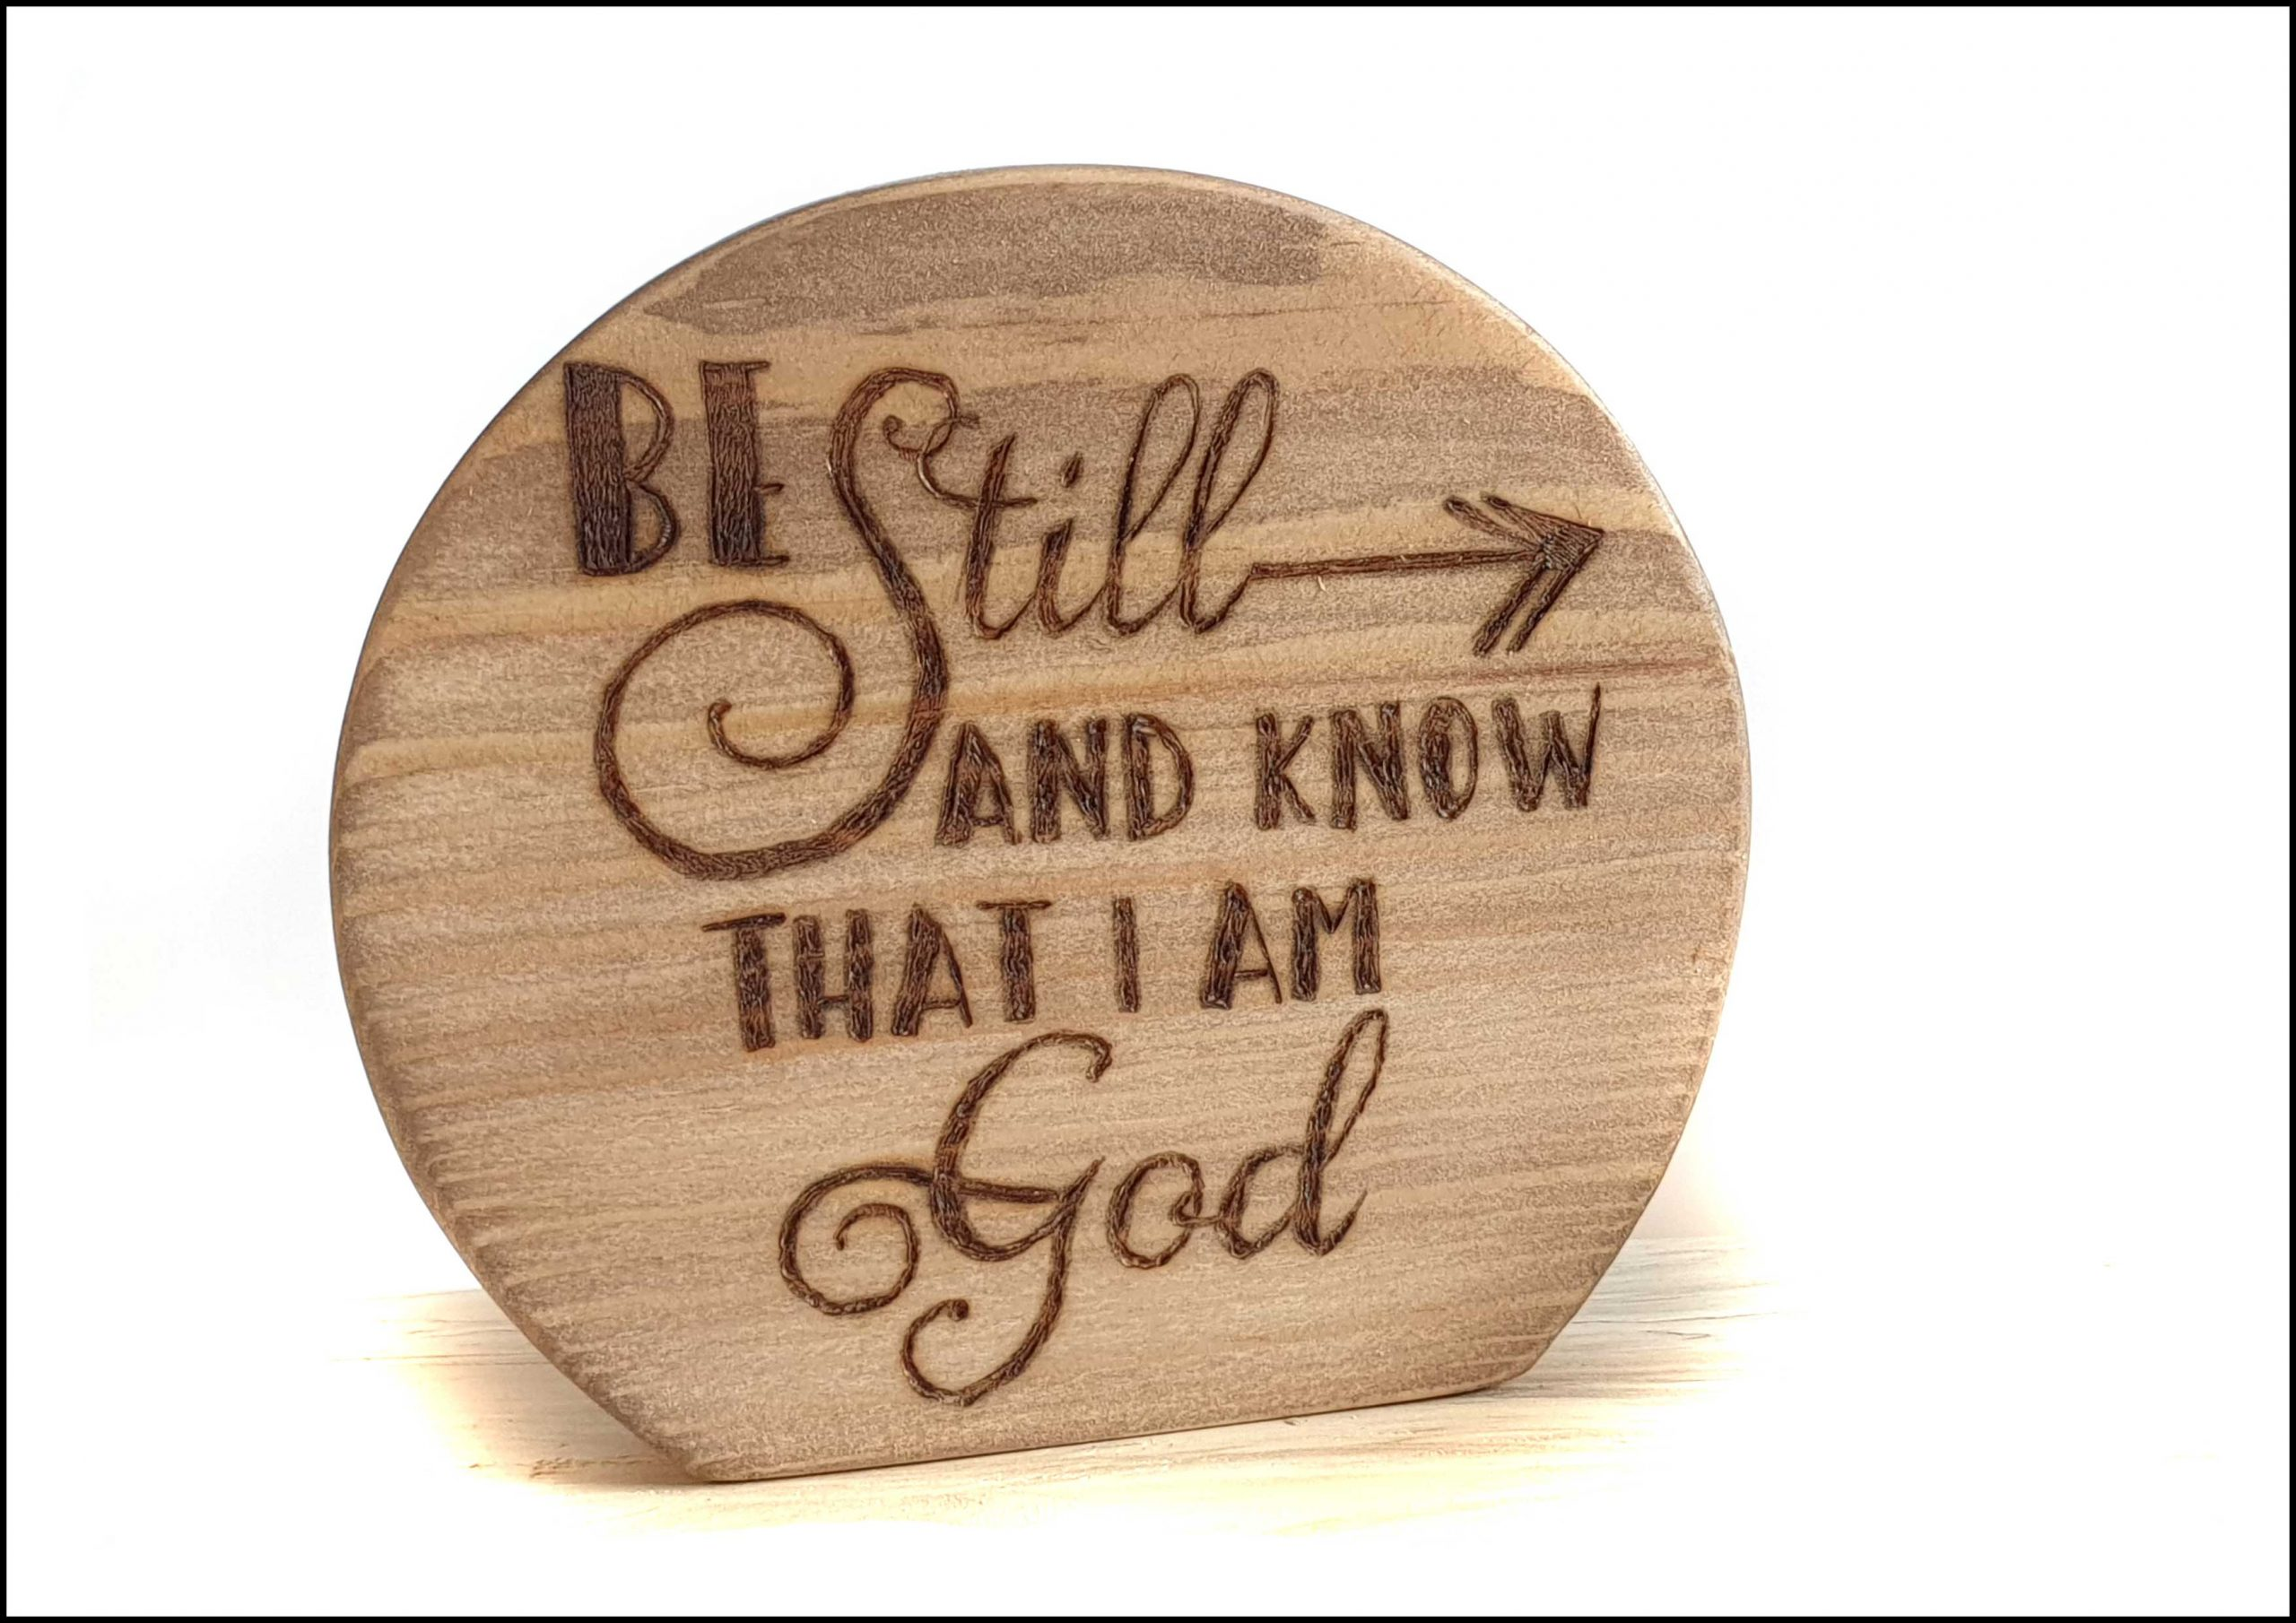 Be still and know plaque Image